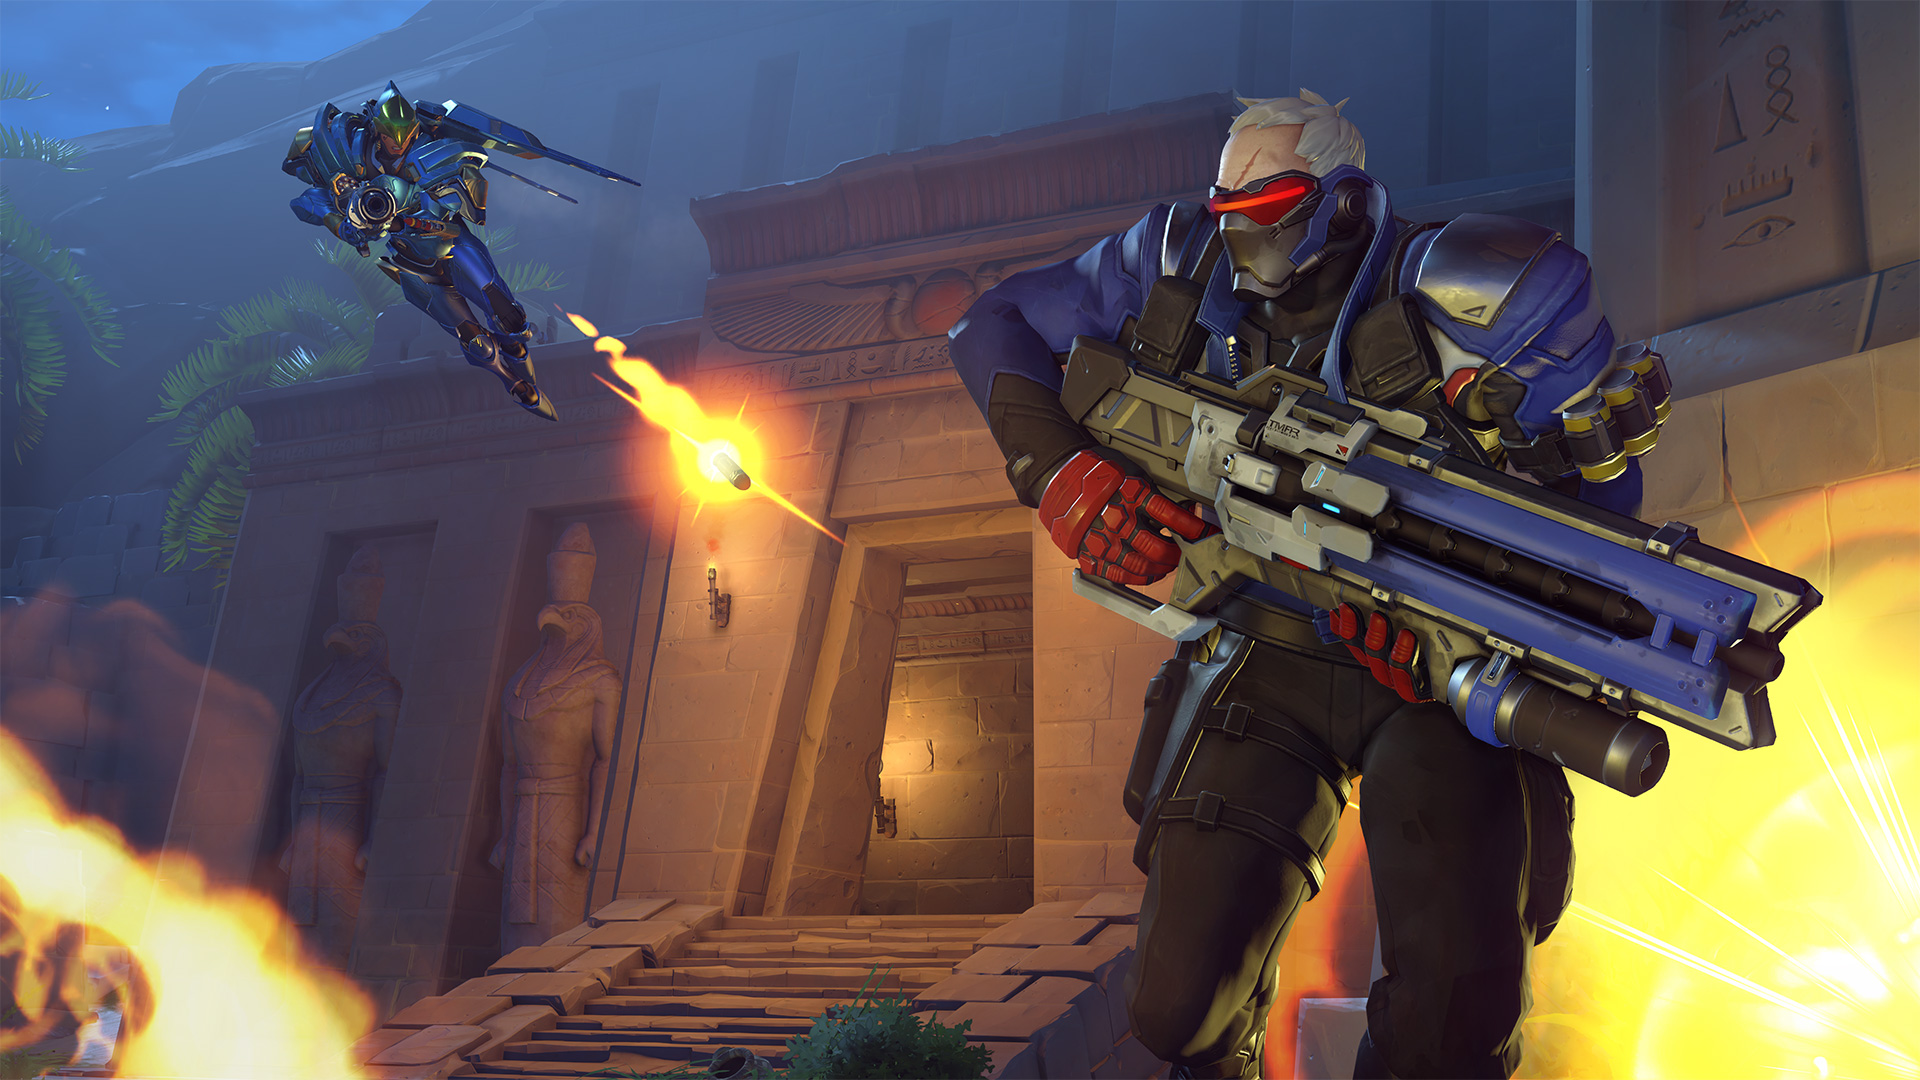 Overwatch - Pharah and Soldier 76 face off